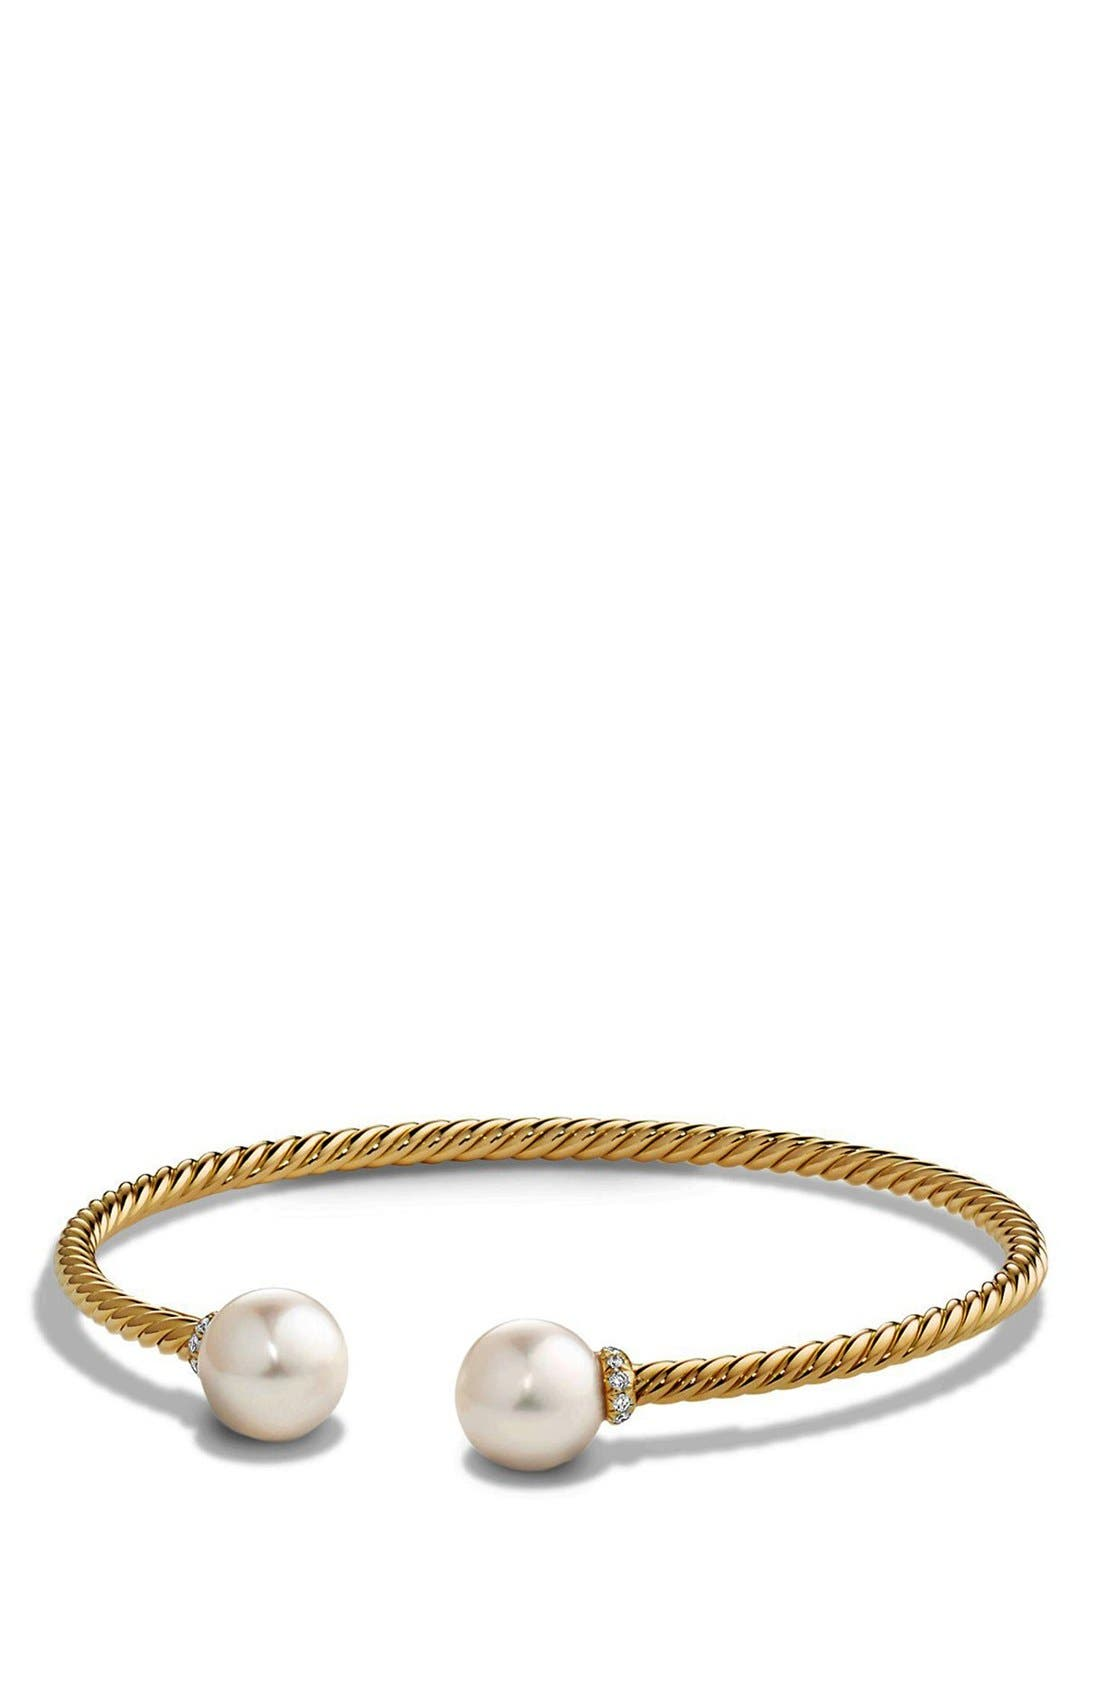 'Solari' Bead Bracelet with Diamonds and Pearls in 18K Gold,                         Main,                         color, PEARL